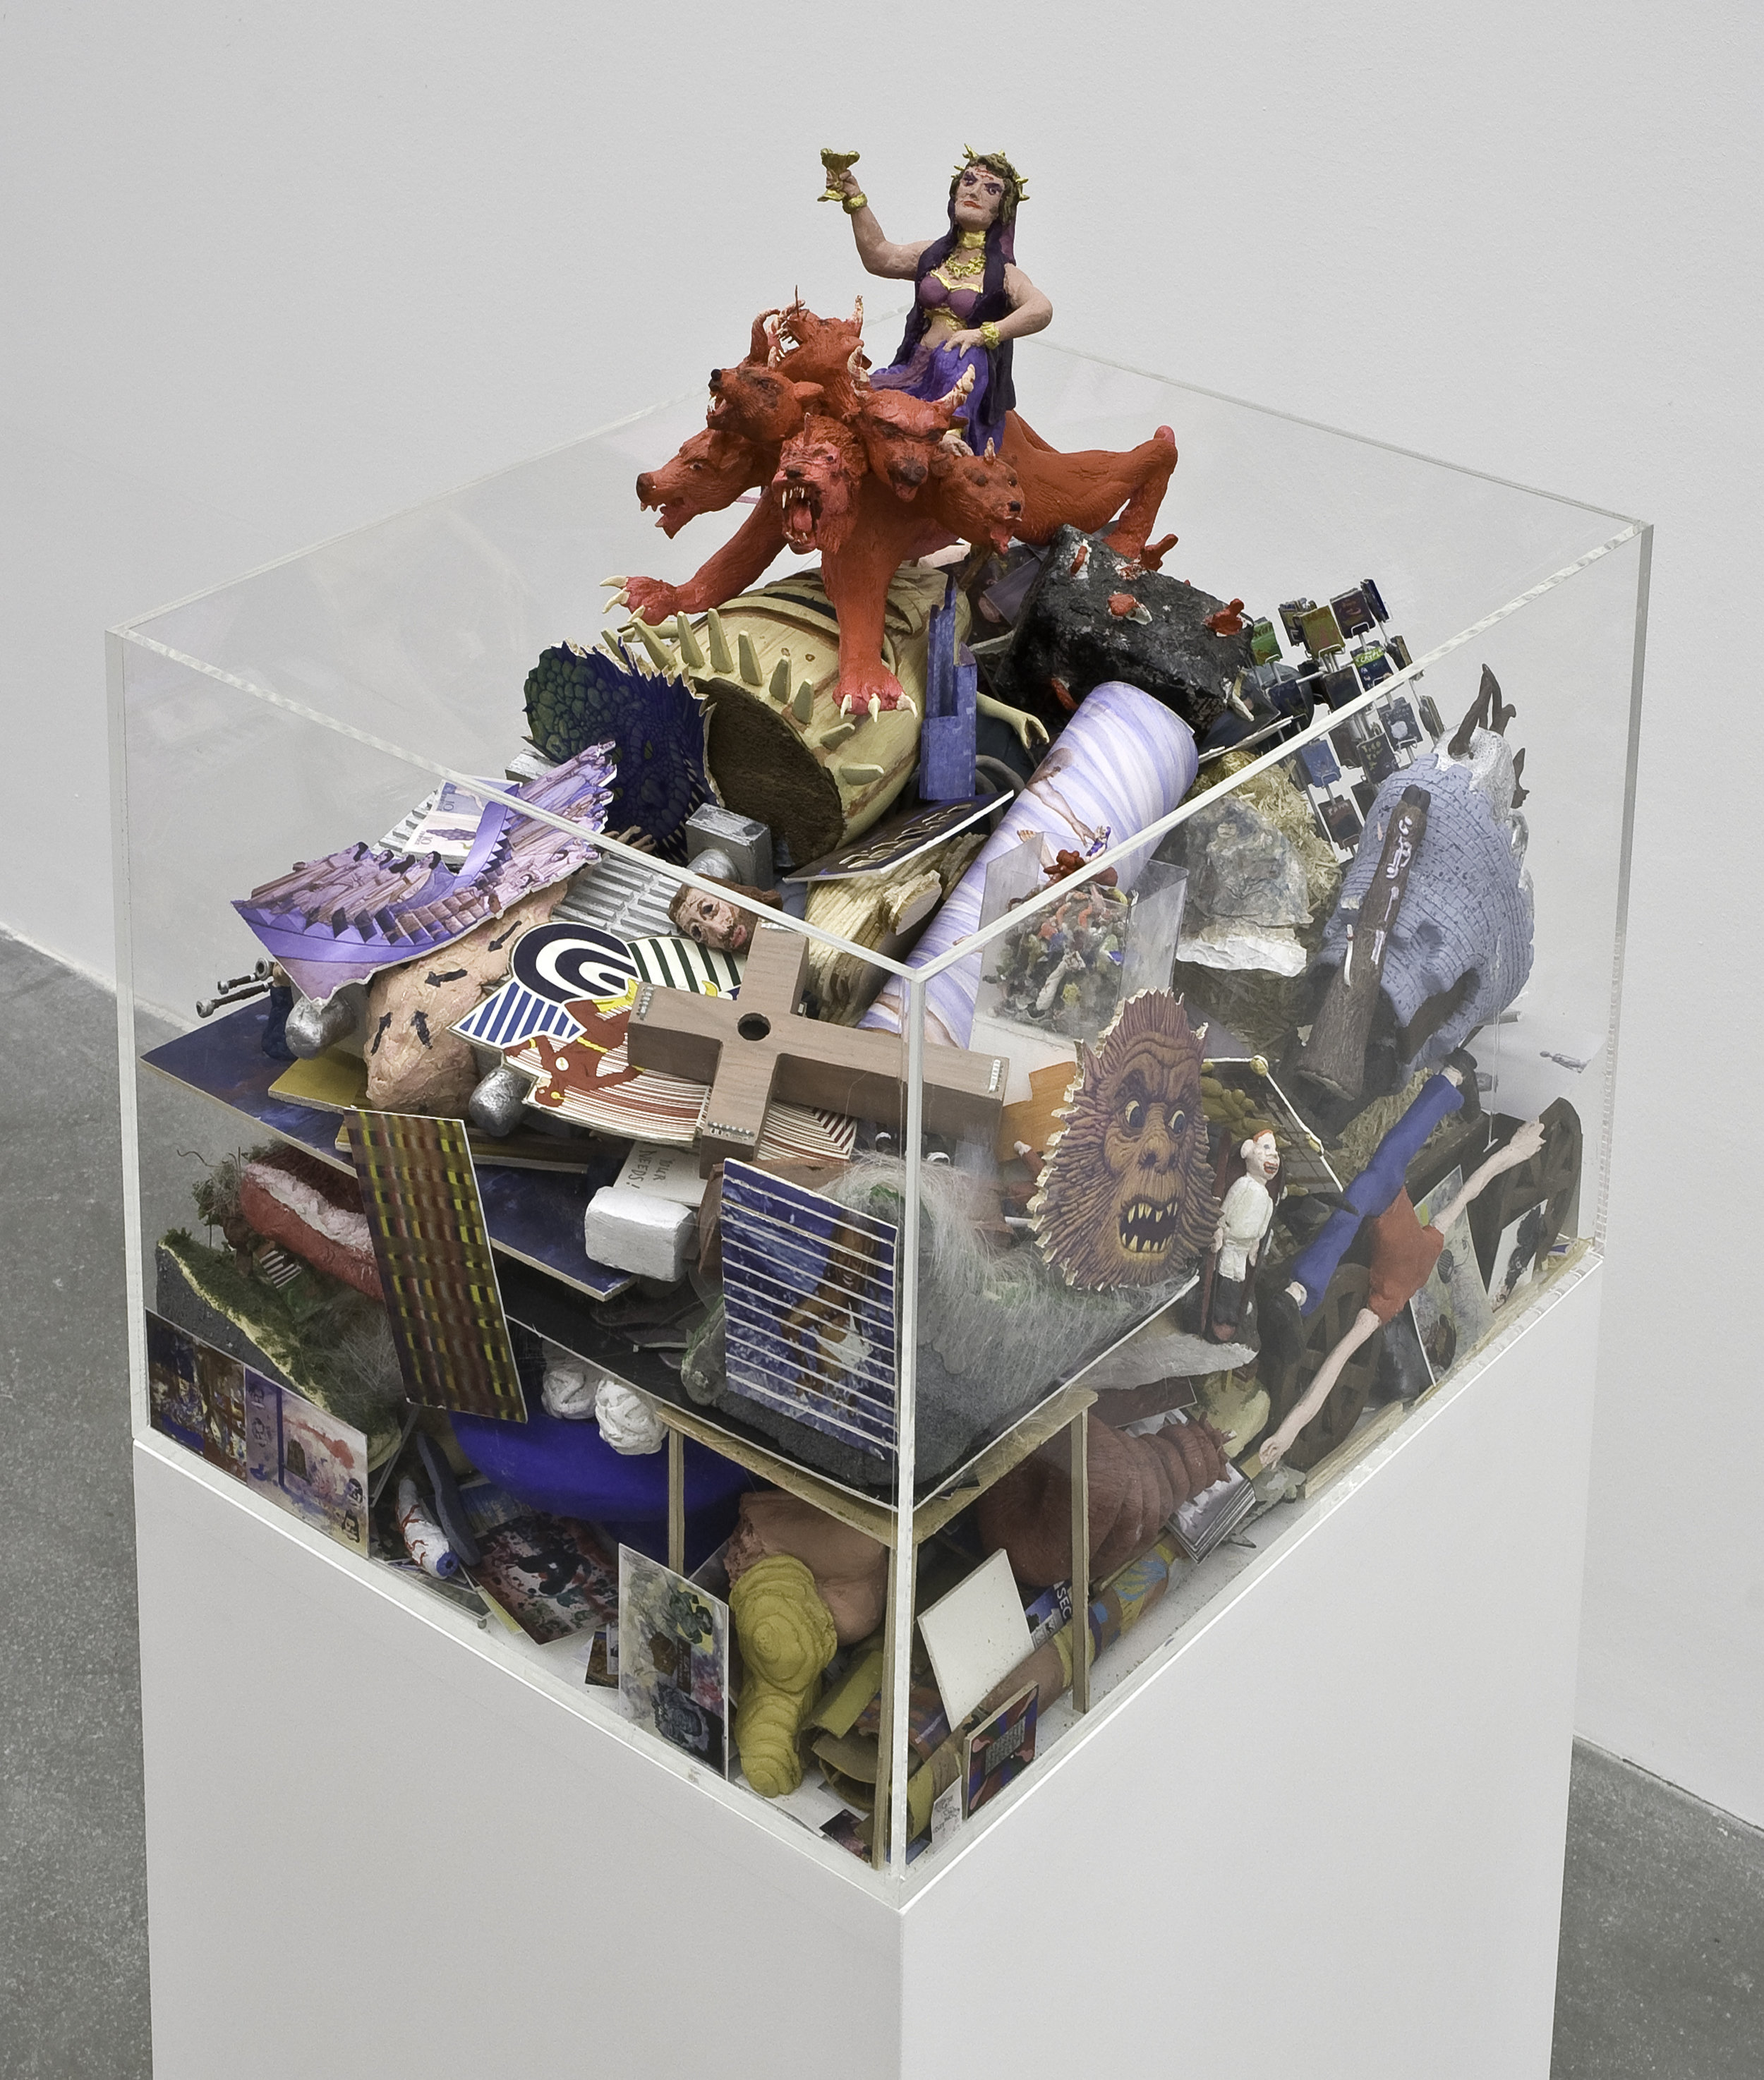 "Dream Object (""I was working on a landscape sculpture that was actually a big garbage pile of all the dream objects I'd done...""), 2007 mixed media sculpture, plexiglass case 31 x 47 x 36,8 cm - 12 1/4 x 18 1/2 x 14 1/2 inches"